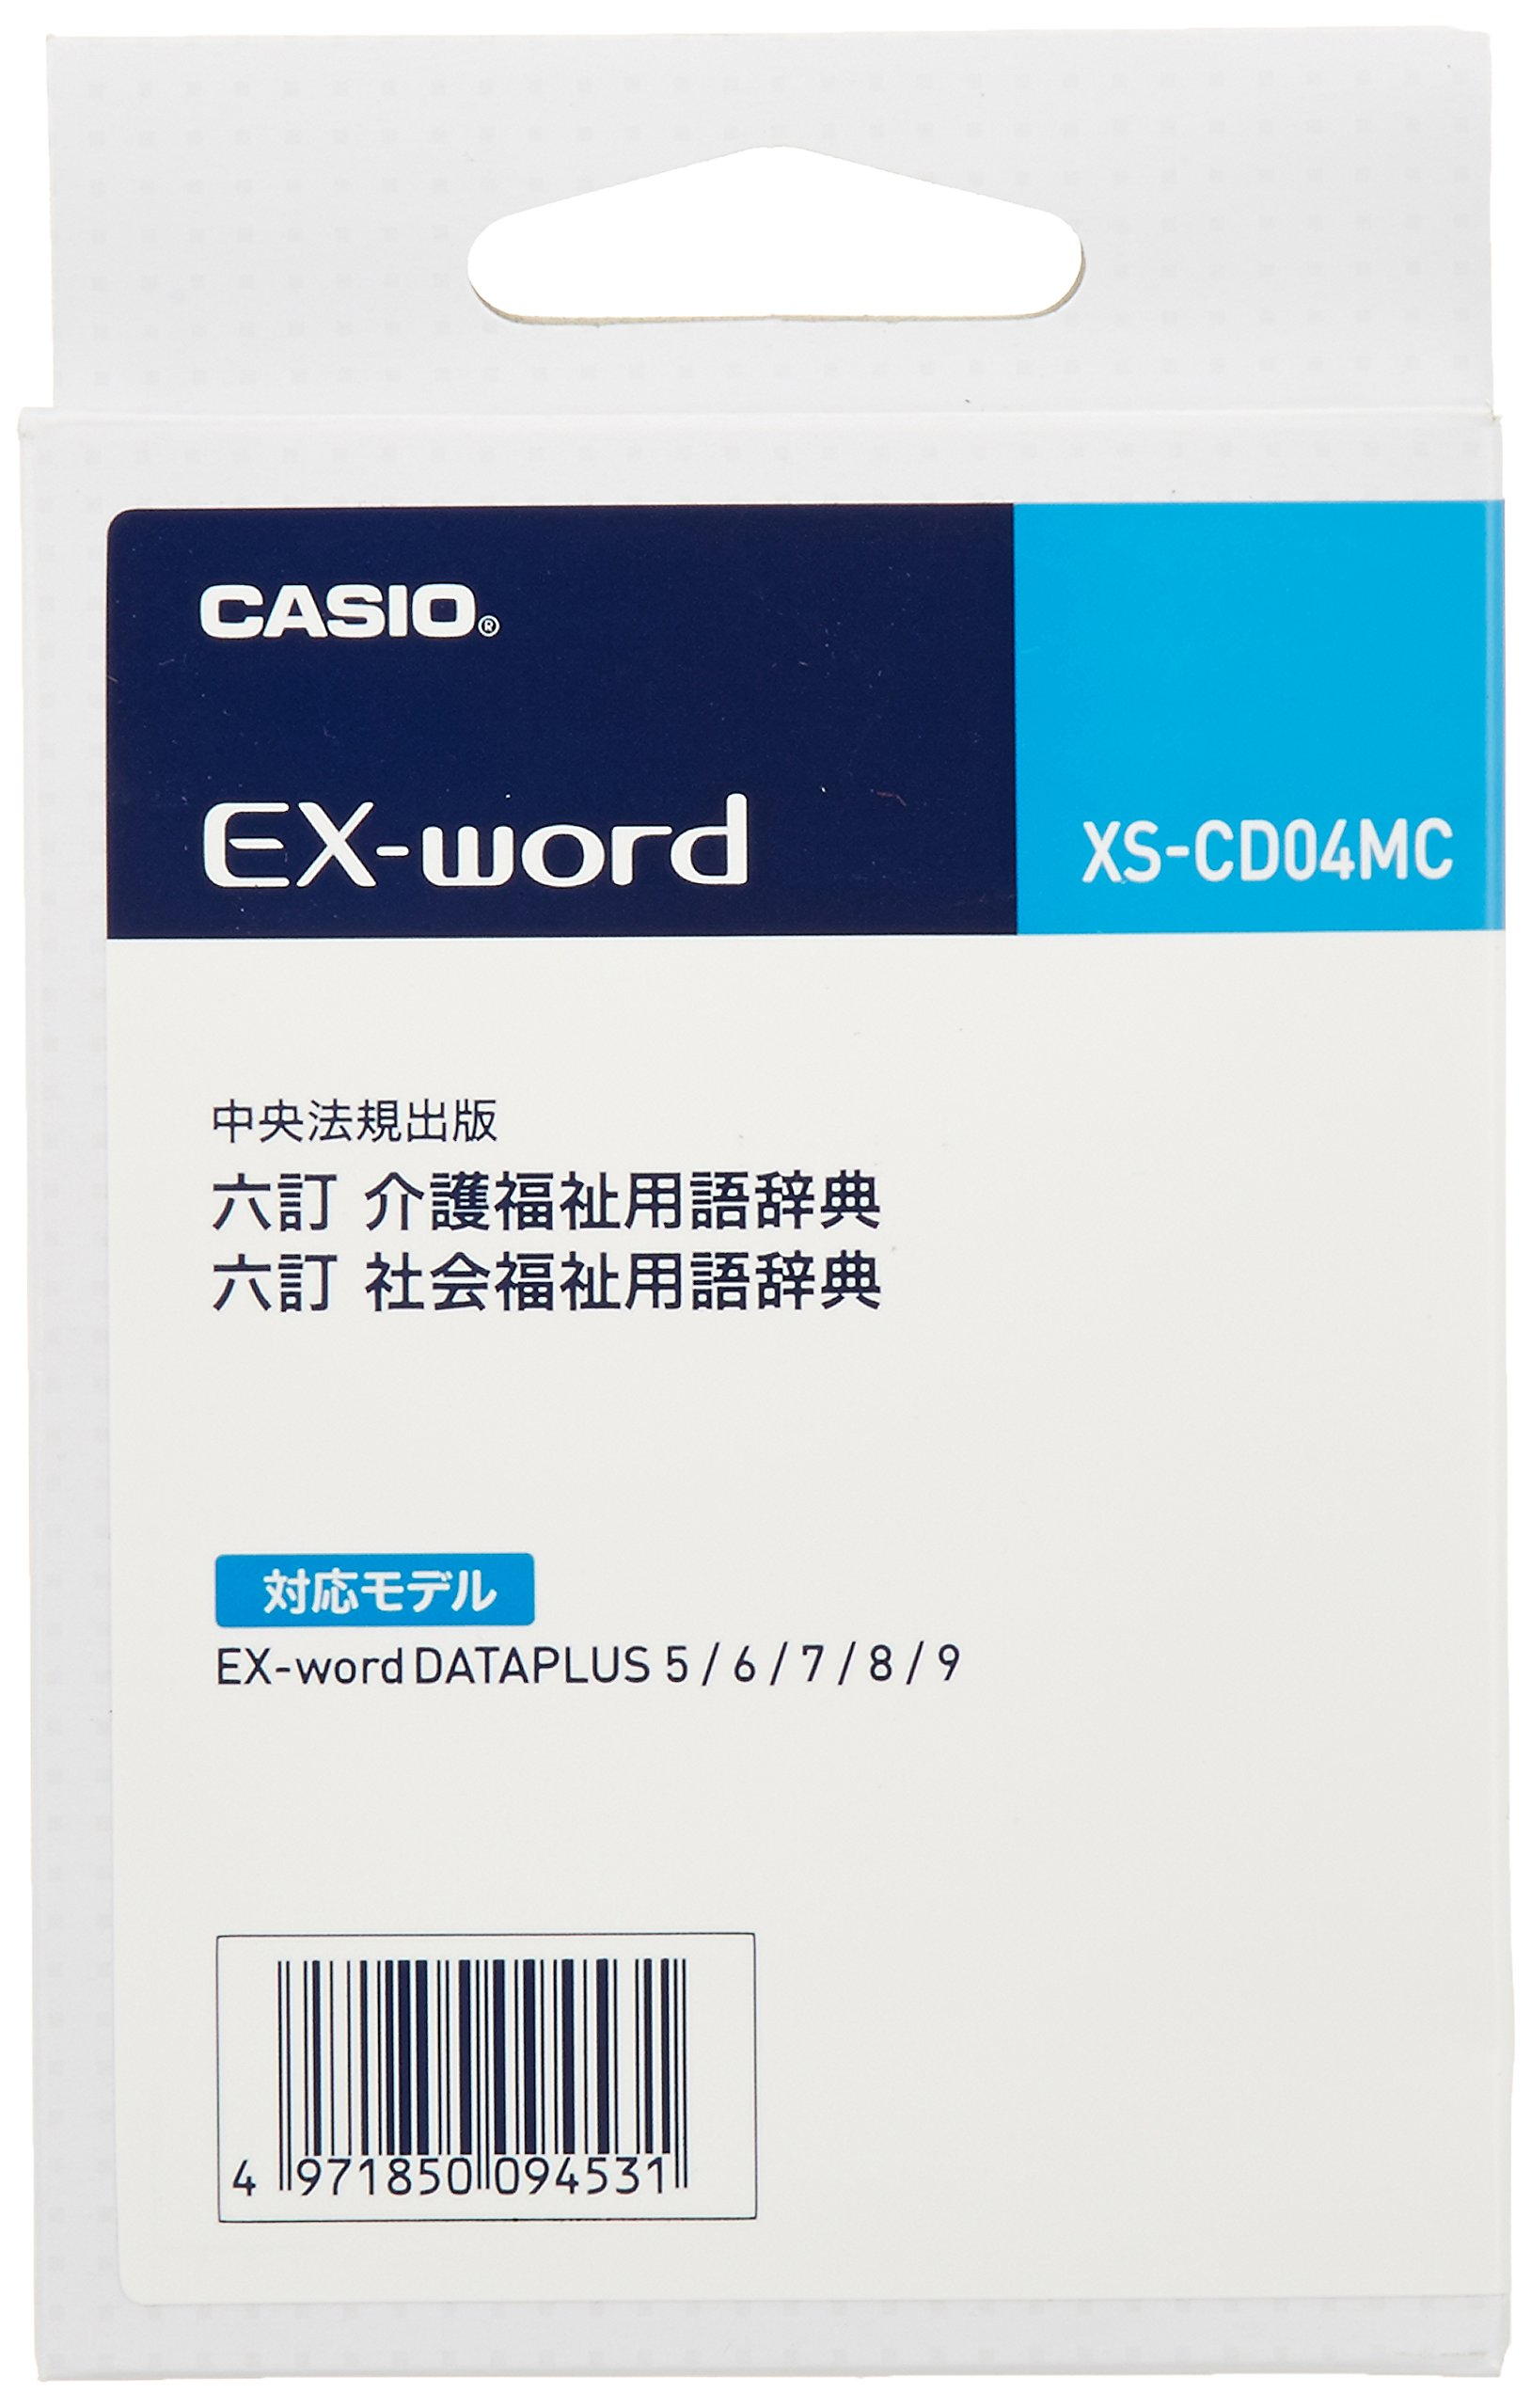 Casio electronic dictionary add content microSD version Care Glossary social welfare glossary XS-CD04MC